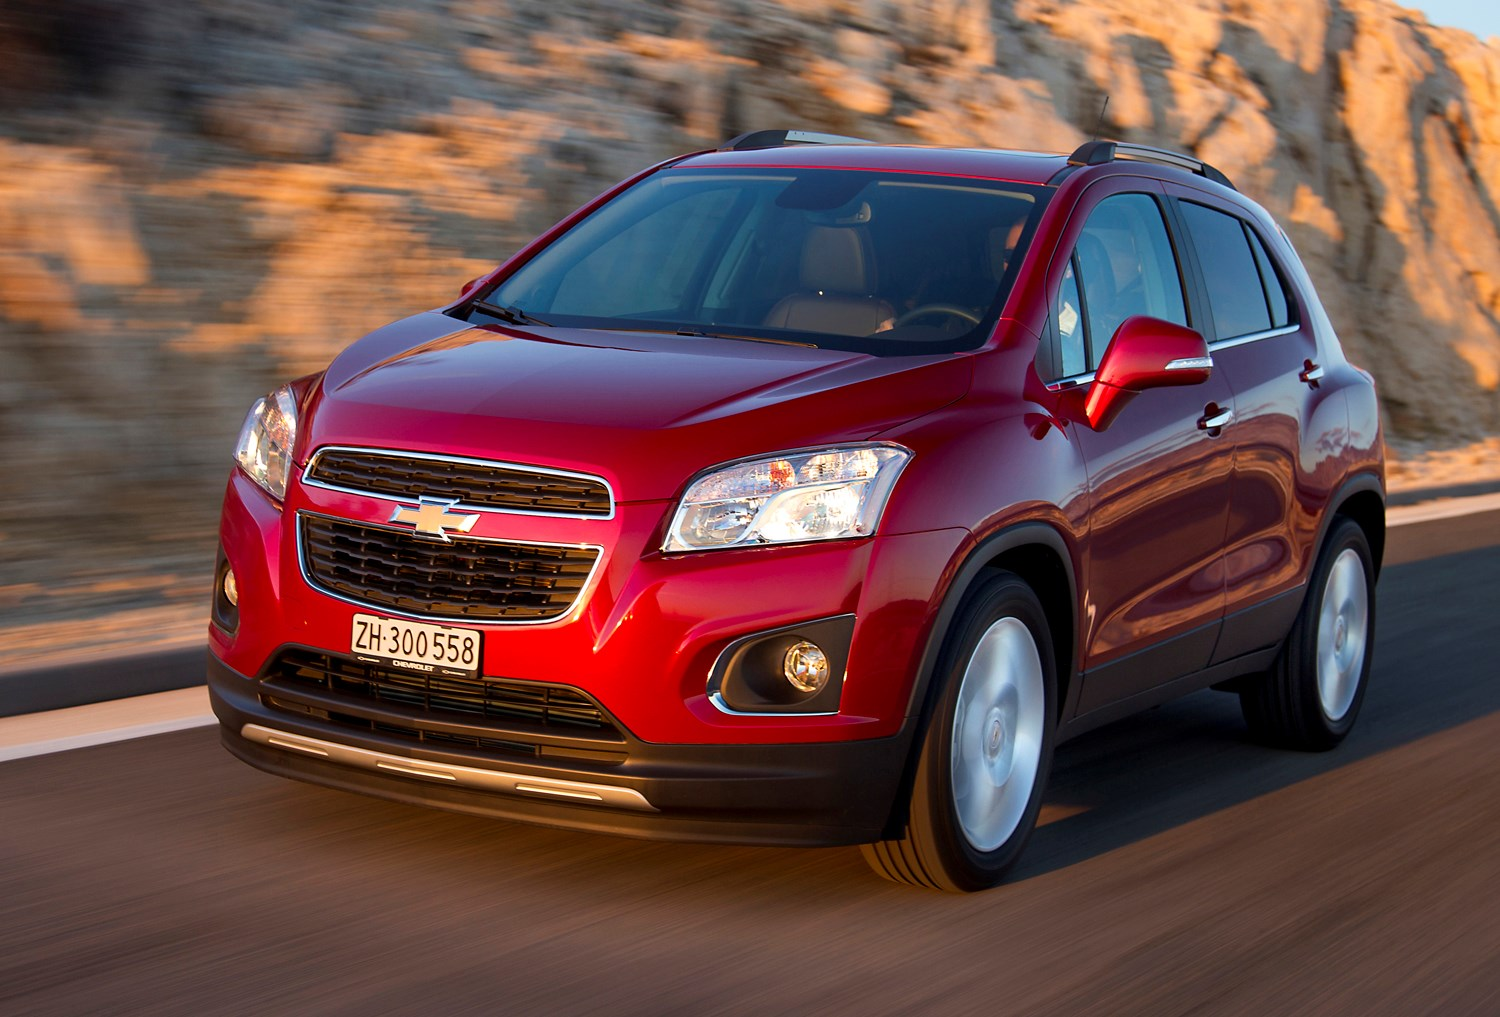 Awd Cars For Sale >> Chevrolet Trax Hatchback Review (2013 - 2015) | Parkers